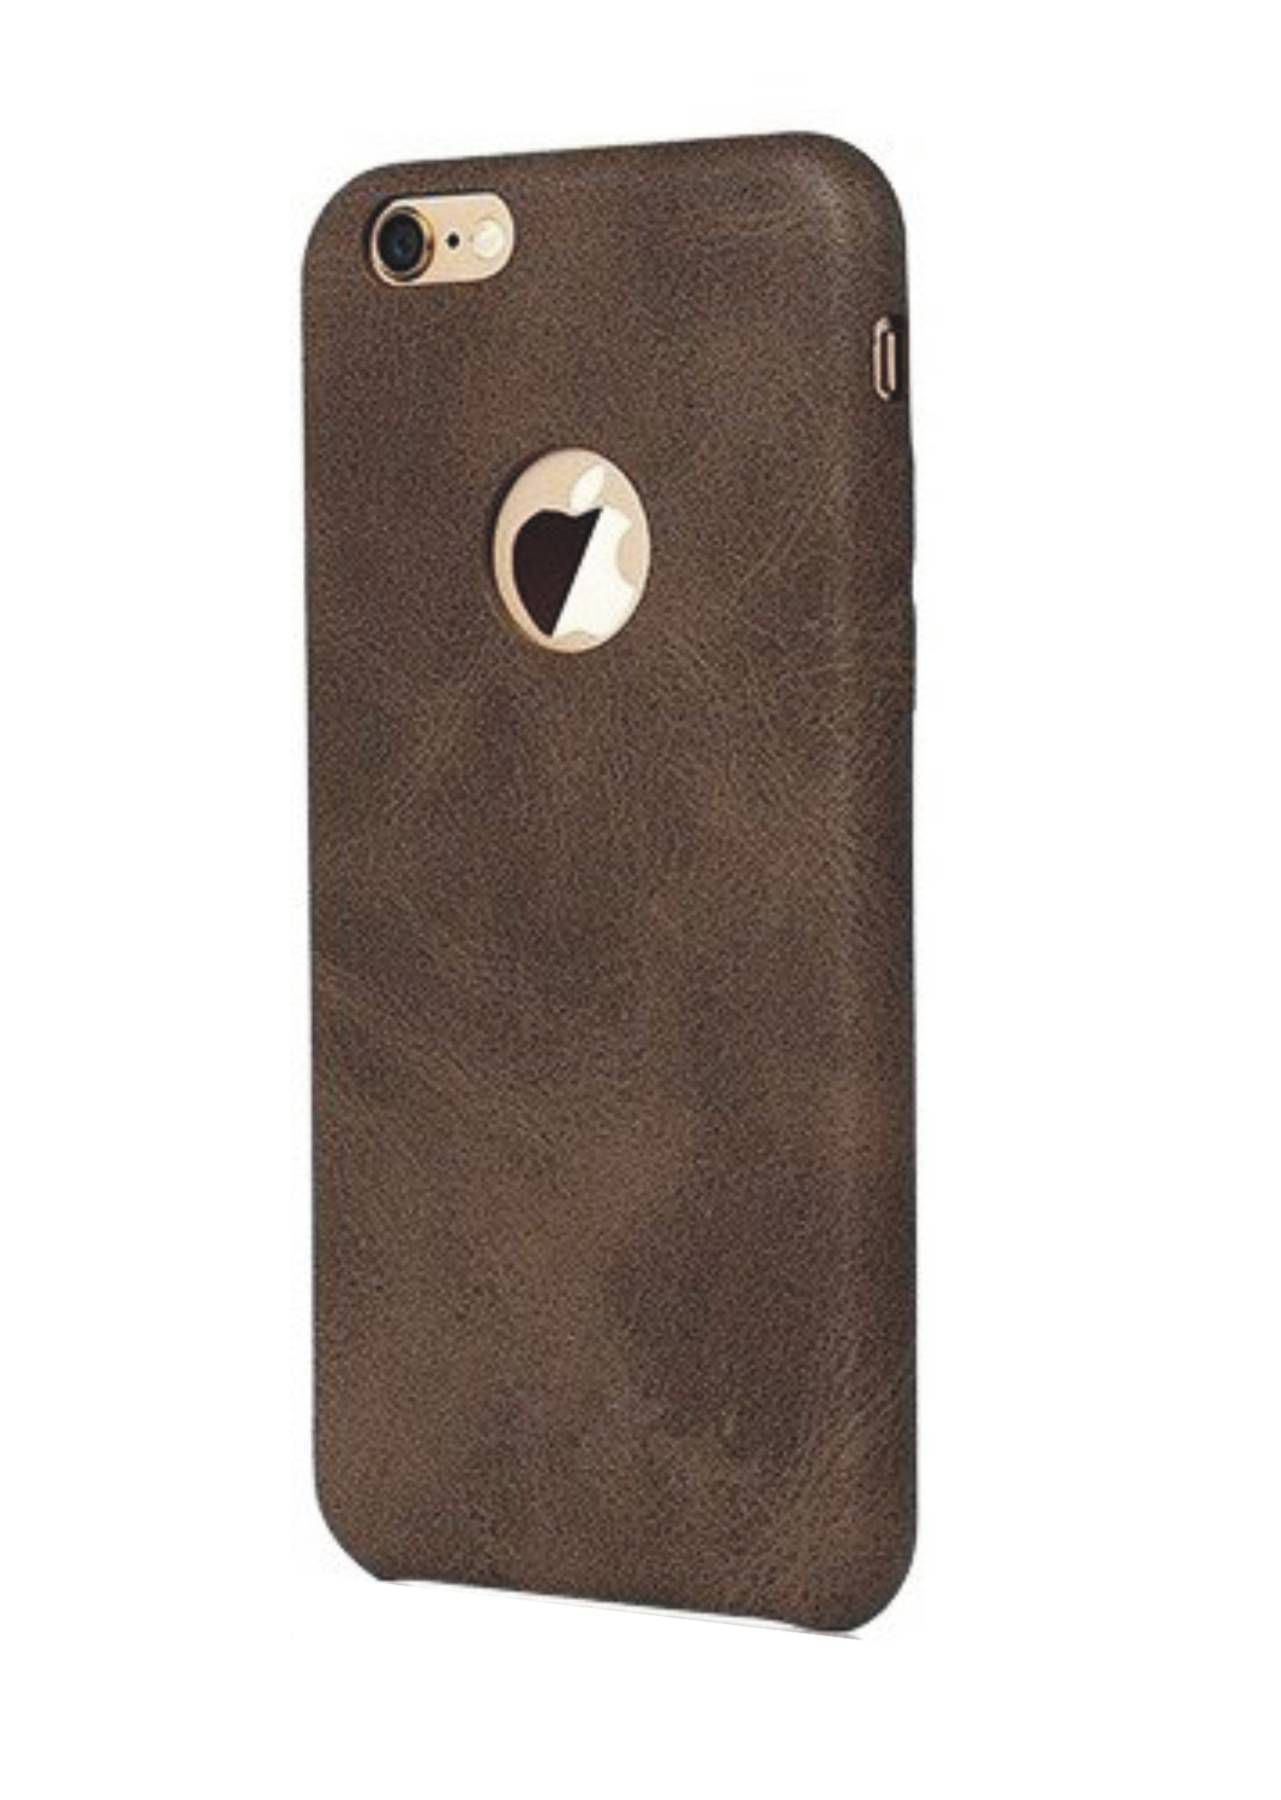 the best attitude b49a1 6f5d9 Apple iPhone SE Cover by re-case - Brown